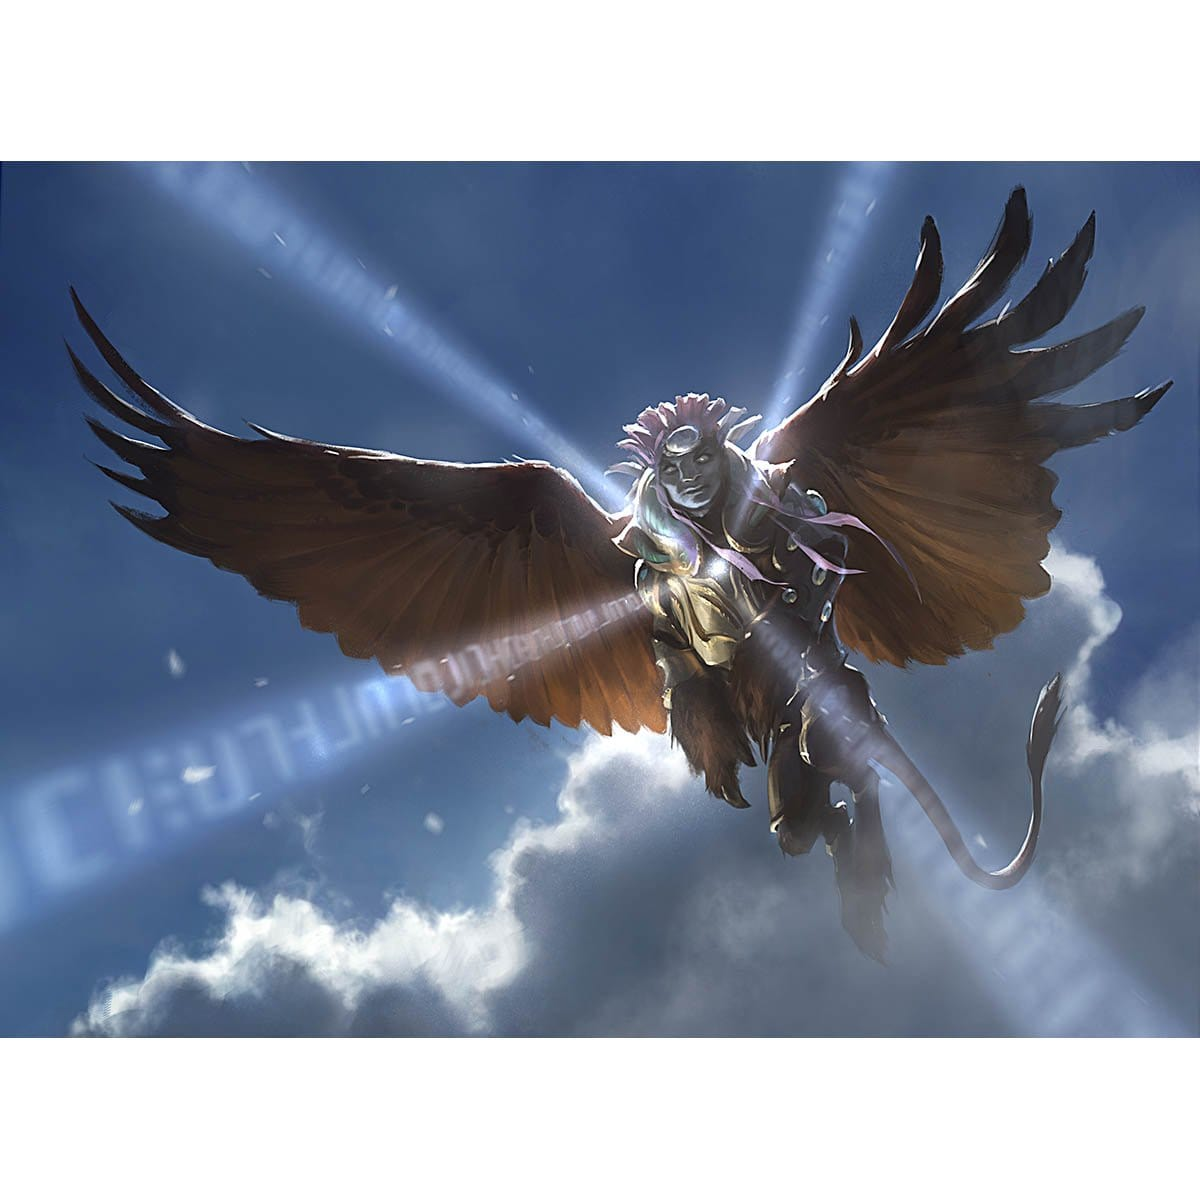 Sphinx's Revelation Print - Print - Original Magic Art - Accessories for Magic the Gathering and other card games